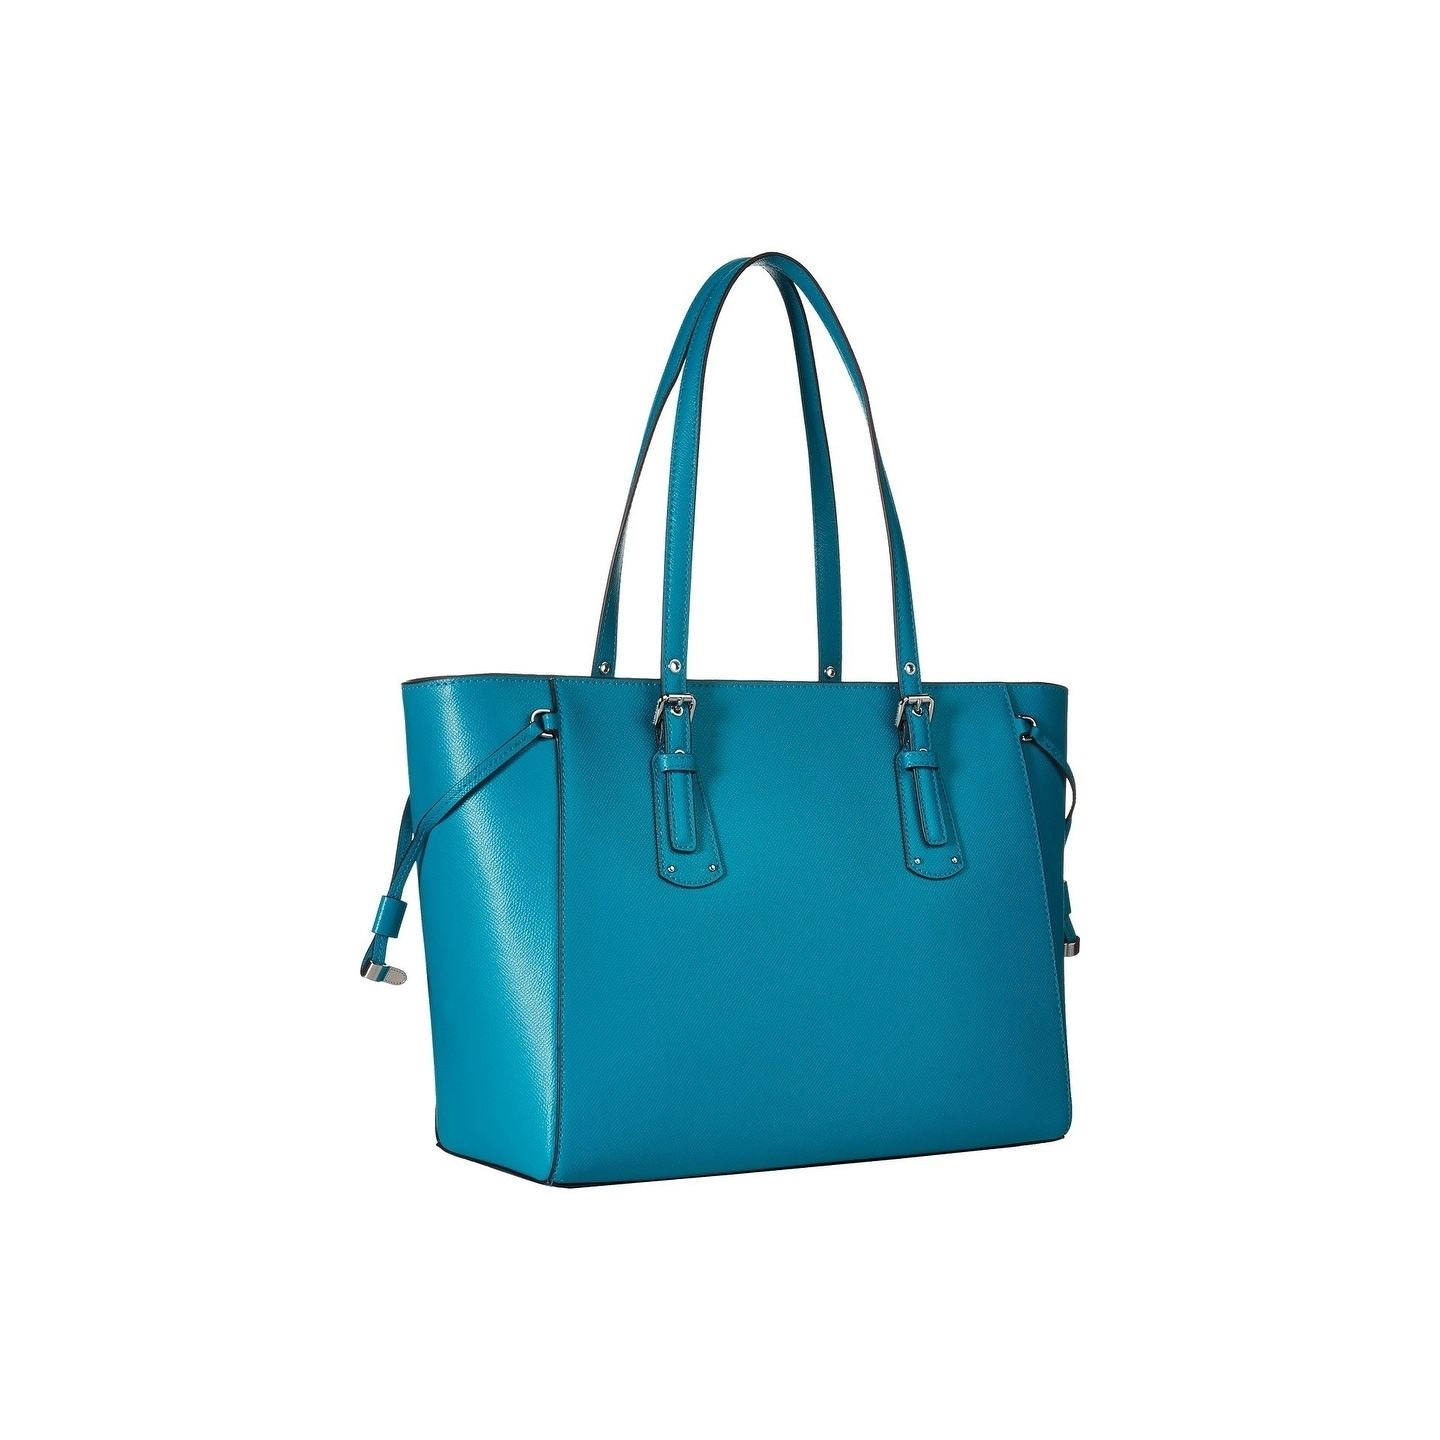 d42319fb7744 Shop MICHAEL Michael Kors Voyager Medium Top Zip Tile Blue Tote Bag - On  Sale - Free Shipping Today - Overstock - 22081711